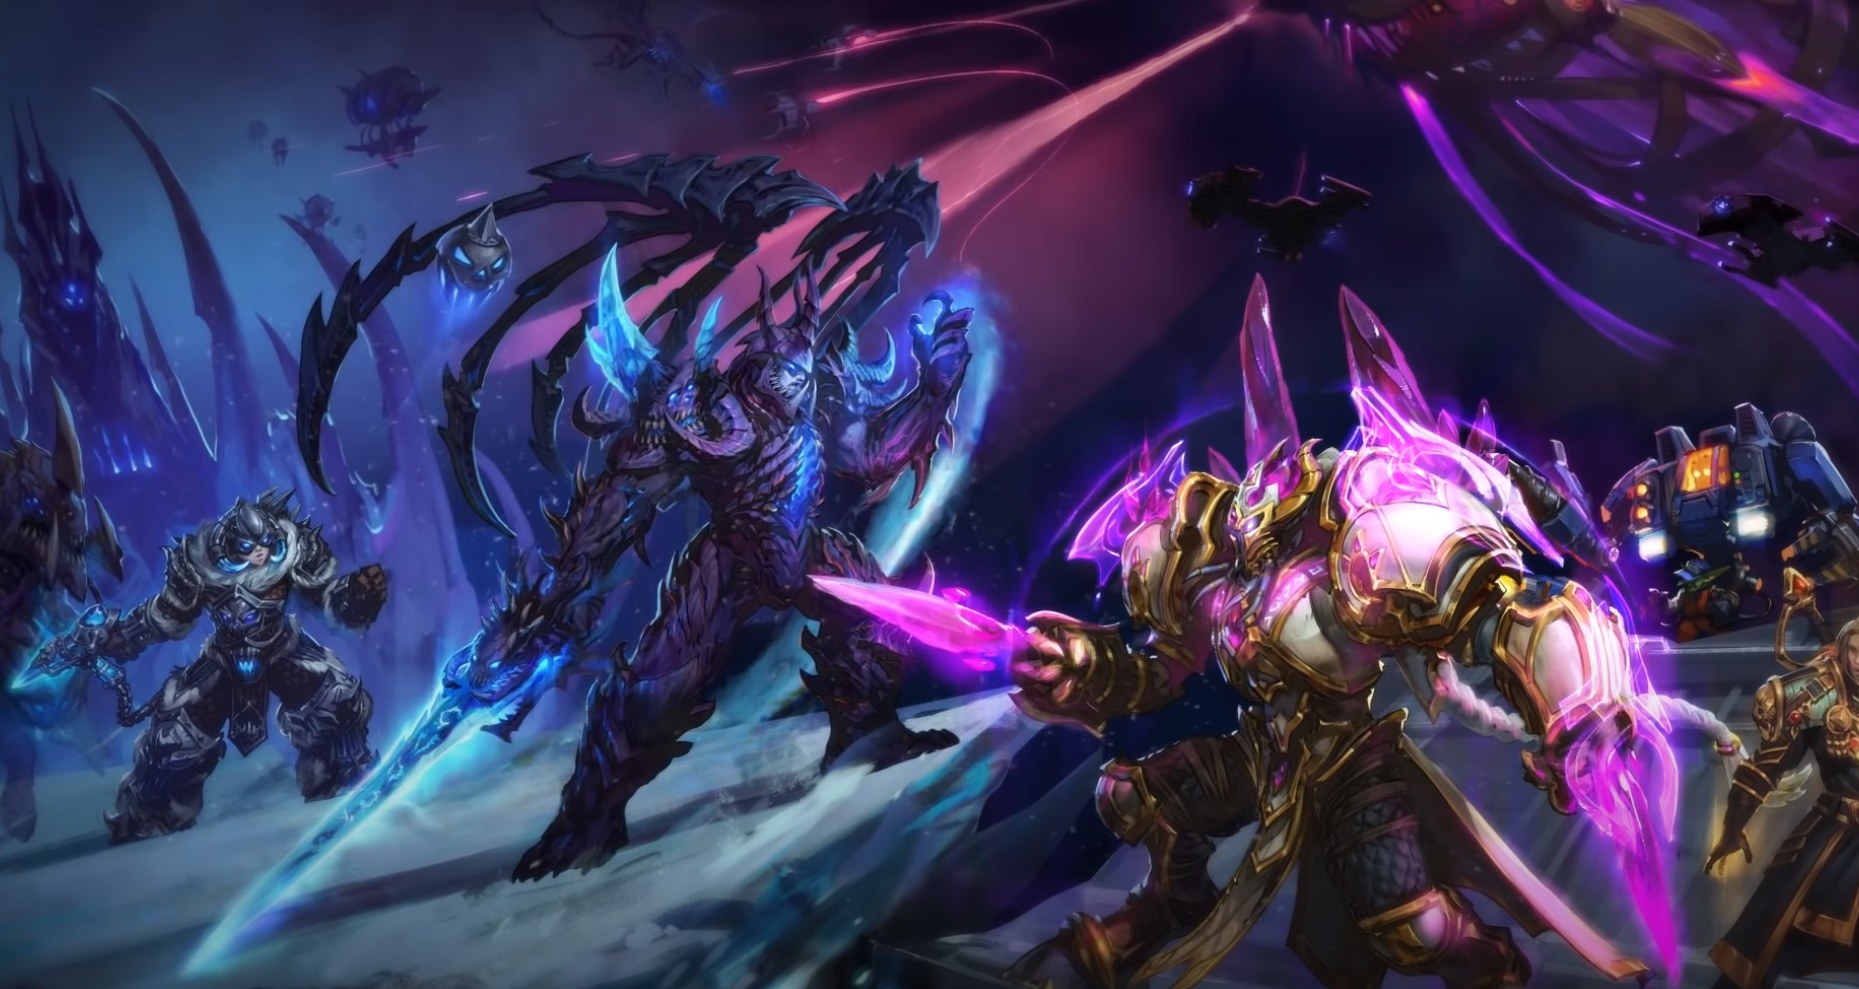 The latest Heroes of the Storm event combines Starcraft and Warcraft into one metal mix screenshot